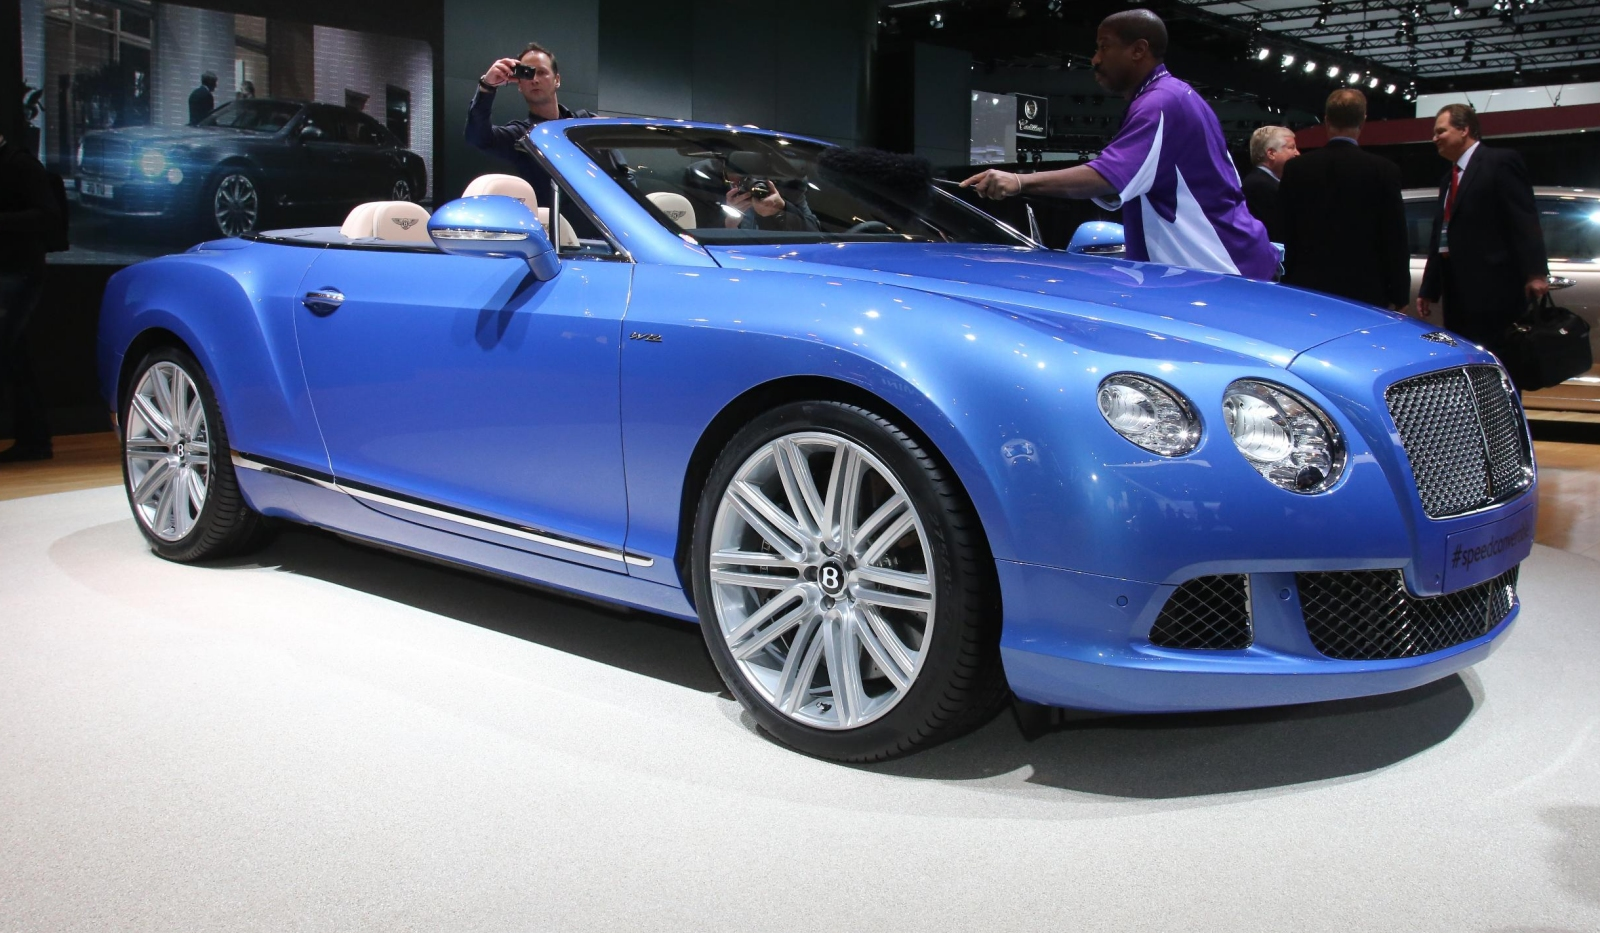 Detroit 2013 bentley continental gt speed convertible gtspirit detroit 2013 bentley continental gt speed convertible vanachro Images